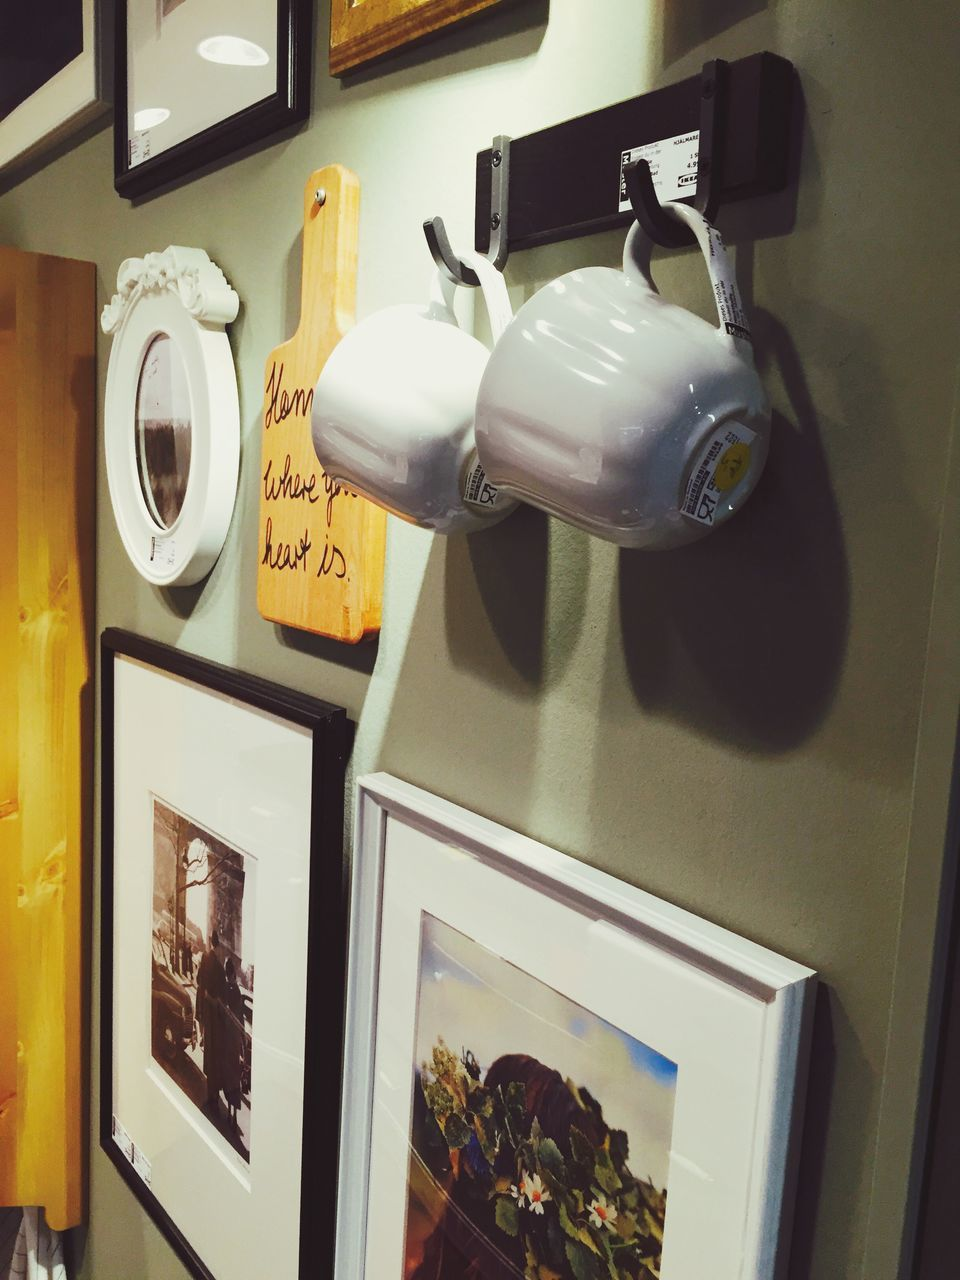 old-fashioned, retro styled, indoors, no people, home interior, technology, close-up, day